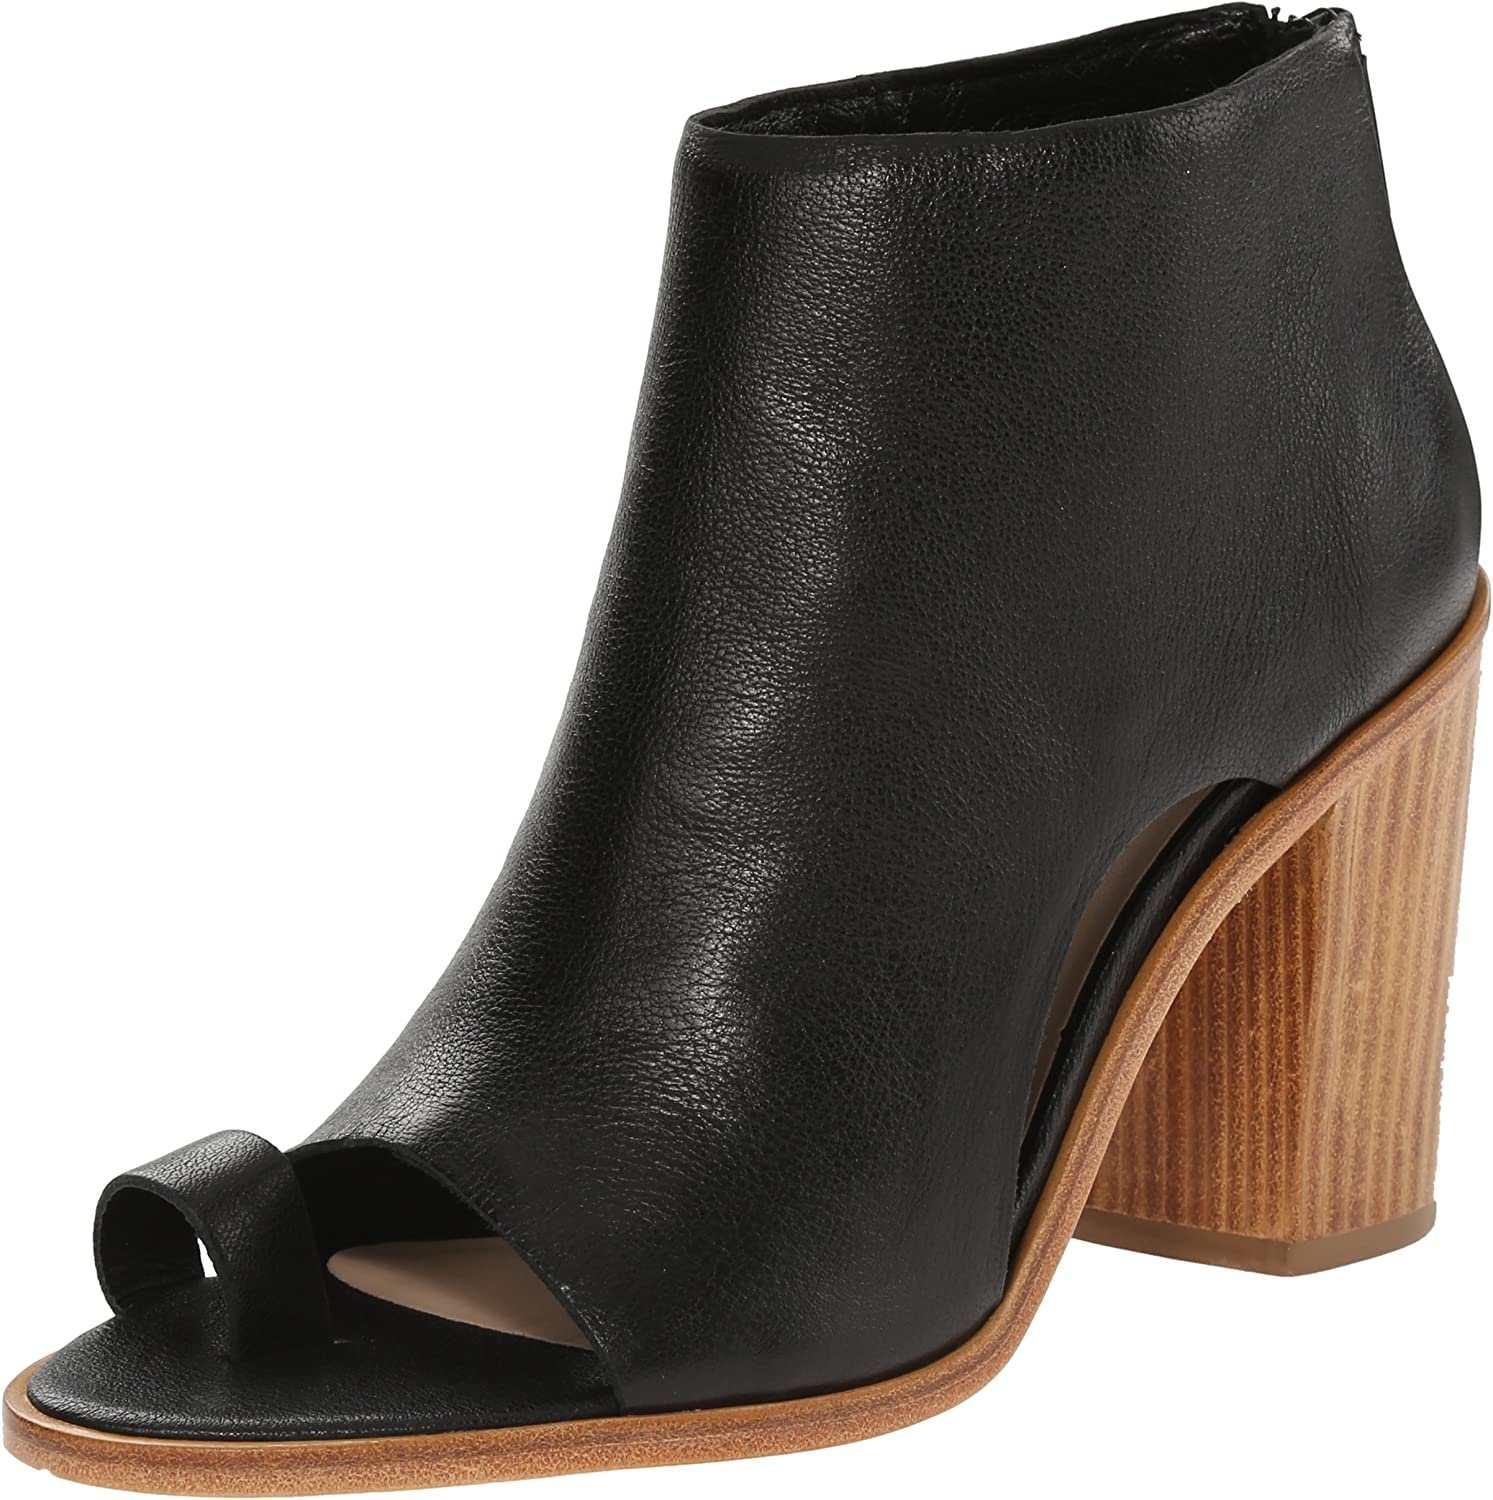 Loeffler Randall Women's Gigi Aviator Calf Dress Pump